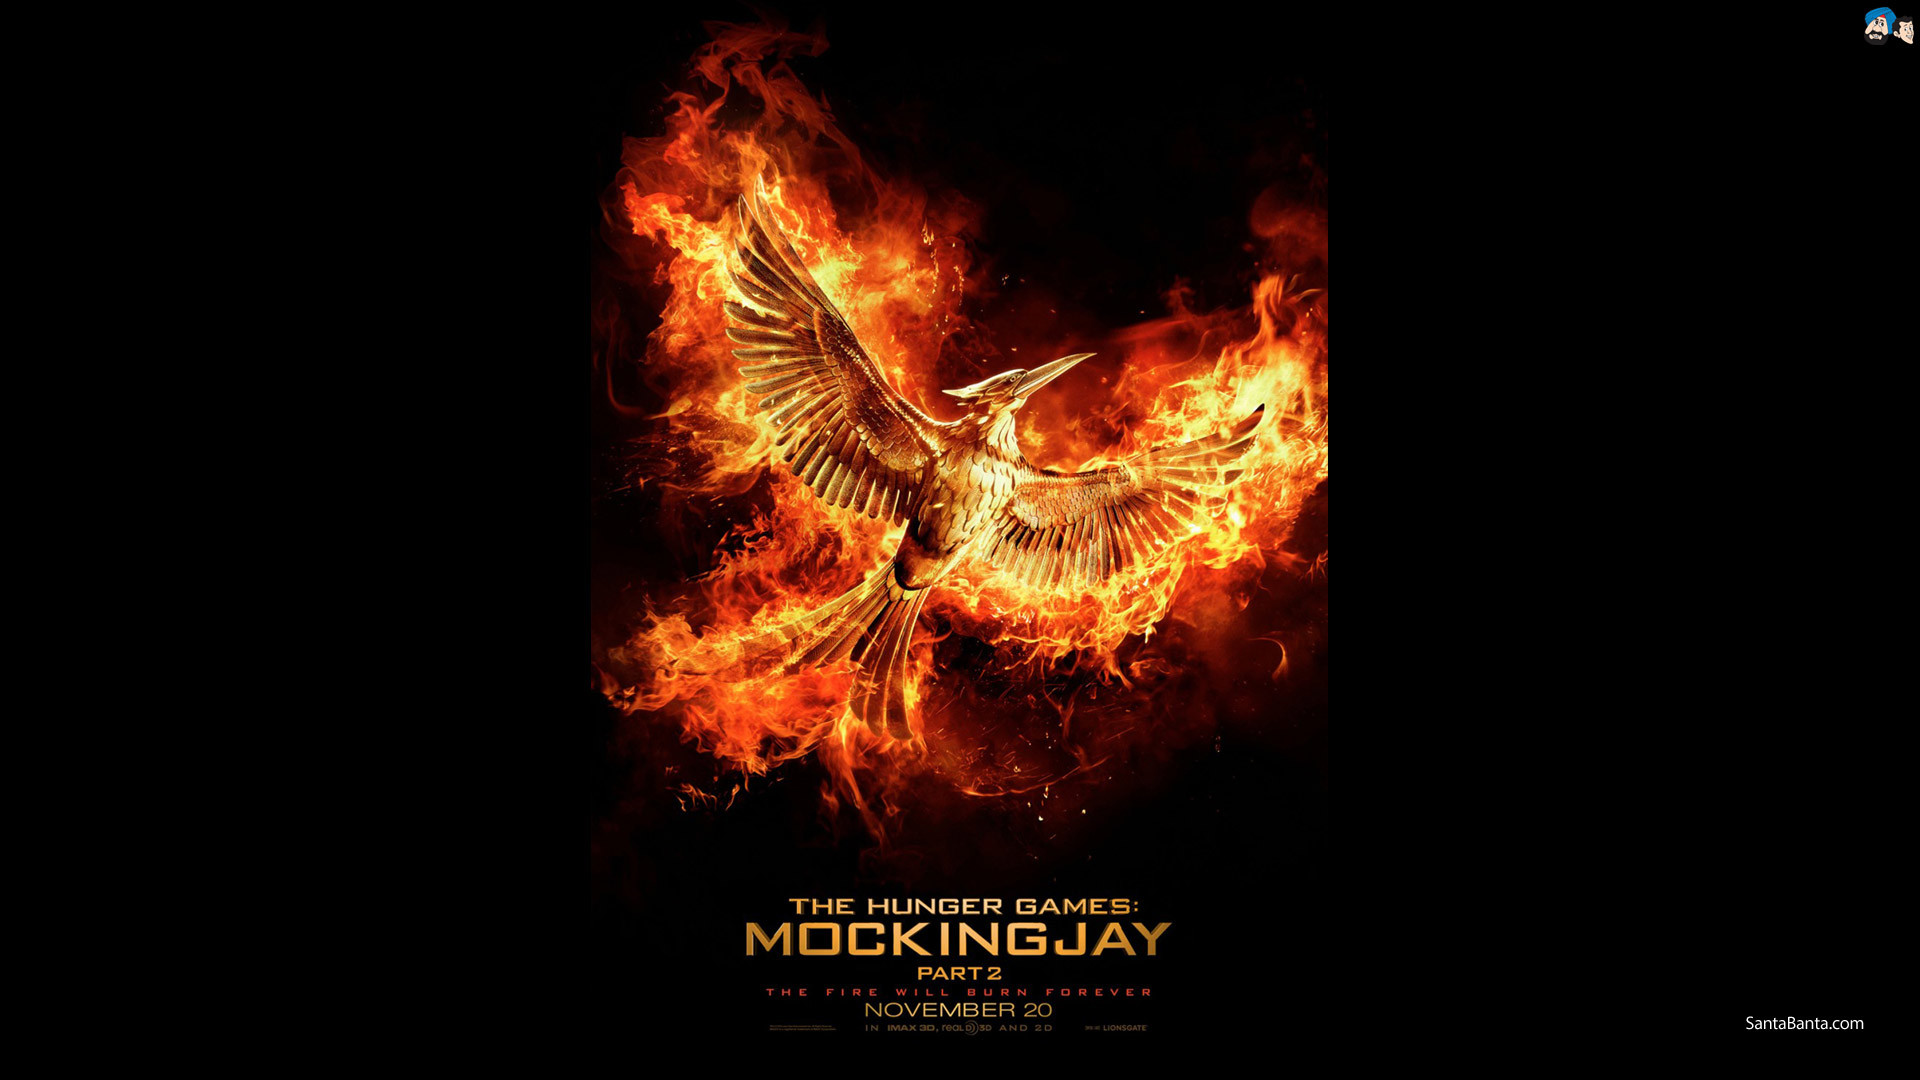 1920x1080 The Hunger Games Mockingjay Part 2.